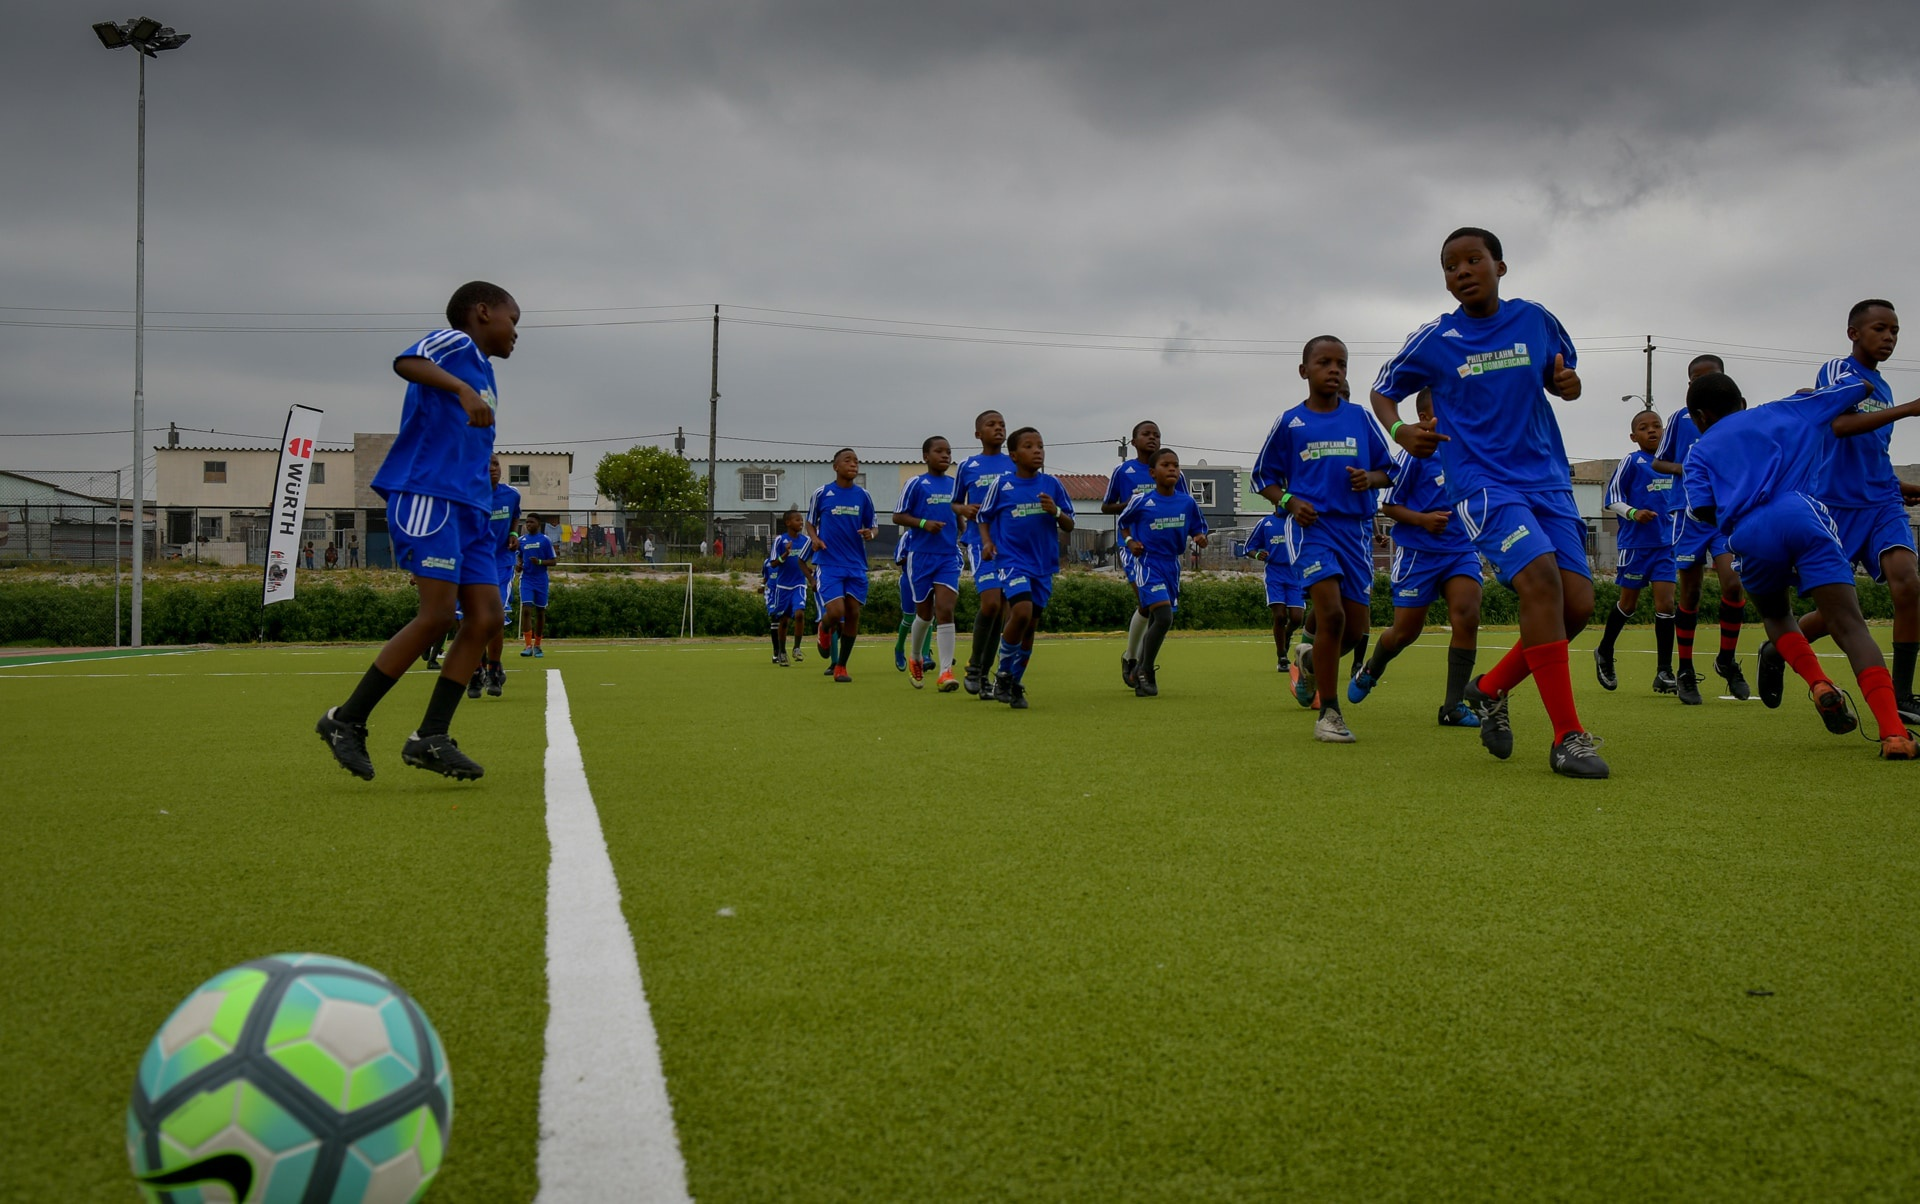 New soccer field opened in Cape Town with the support of the Würth Foundation